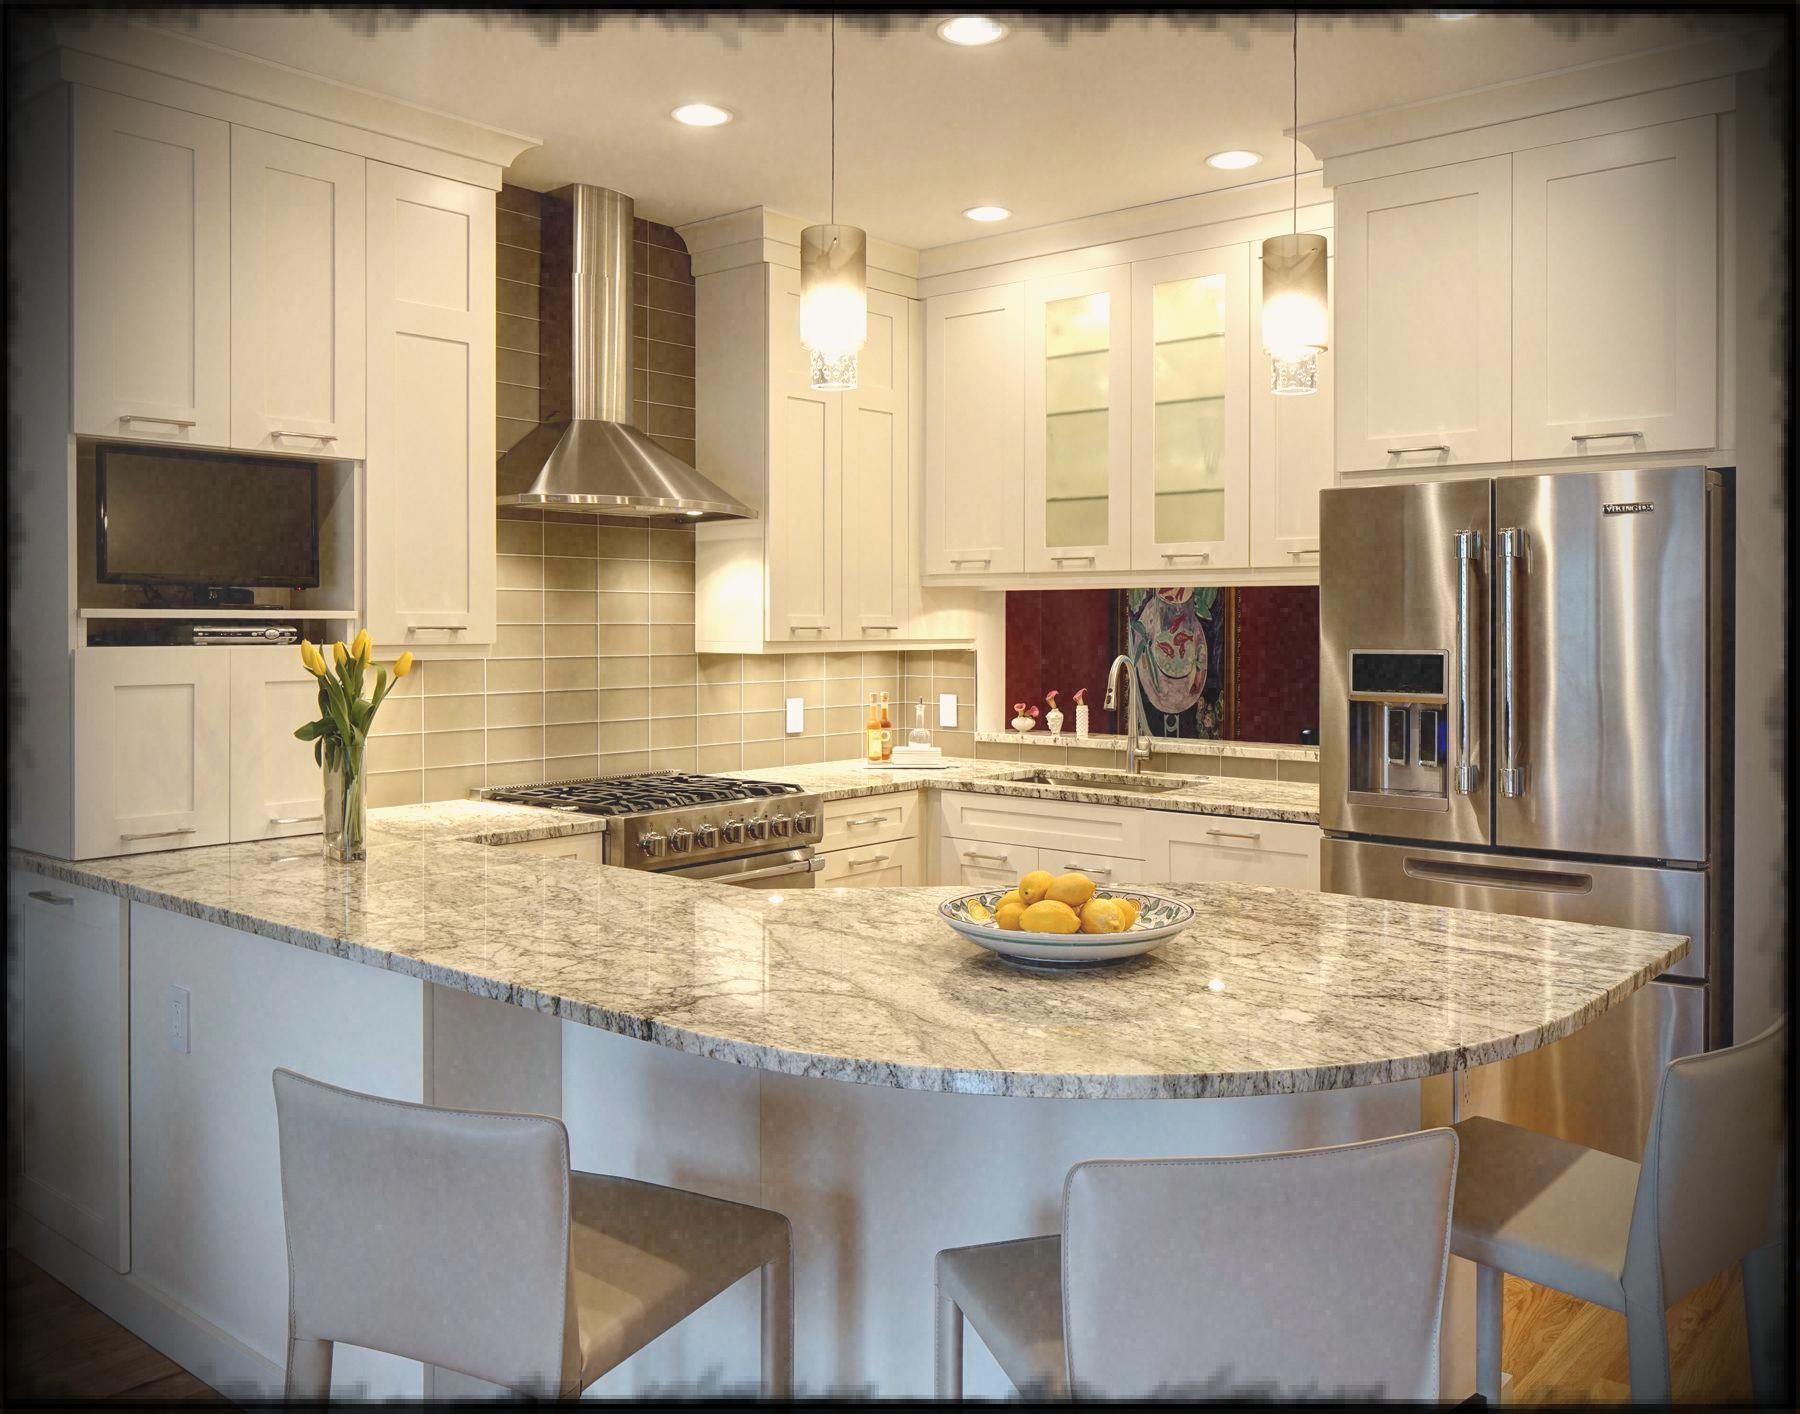 Image Result For 12 X 12 Kitchen Design Layouts Kitchen Remodel Small Open Concept Kitchen Curved Kitchen 12 x 12 kitchen design layouts